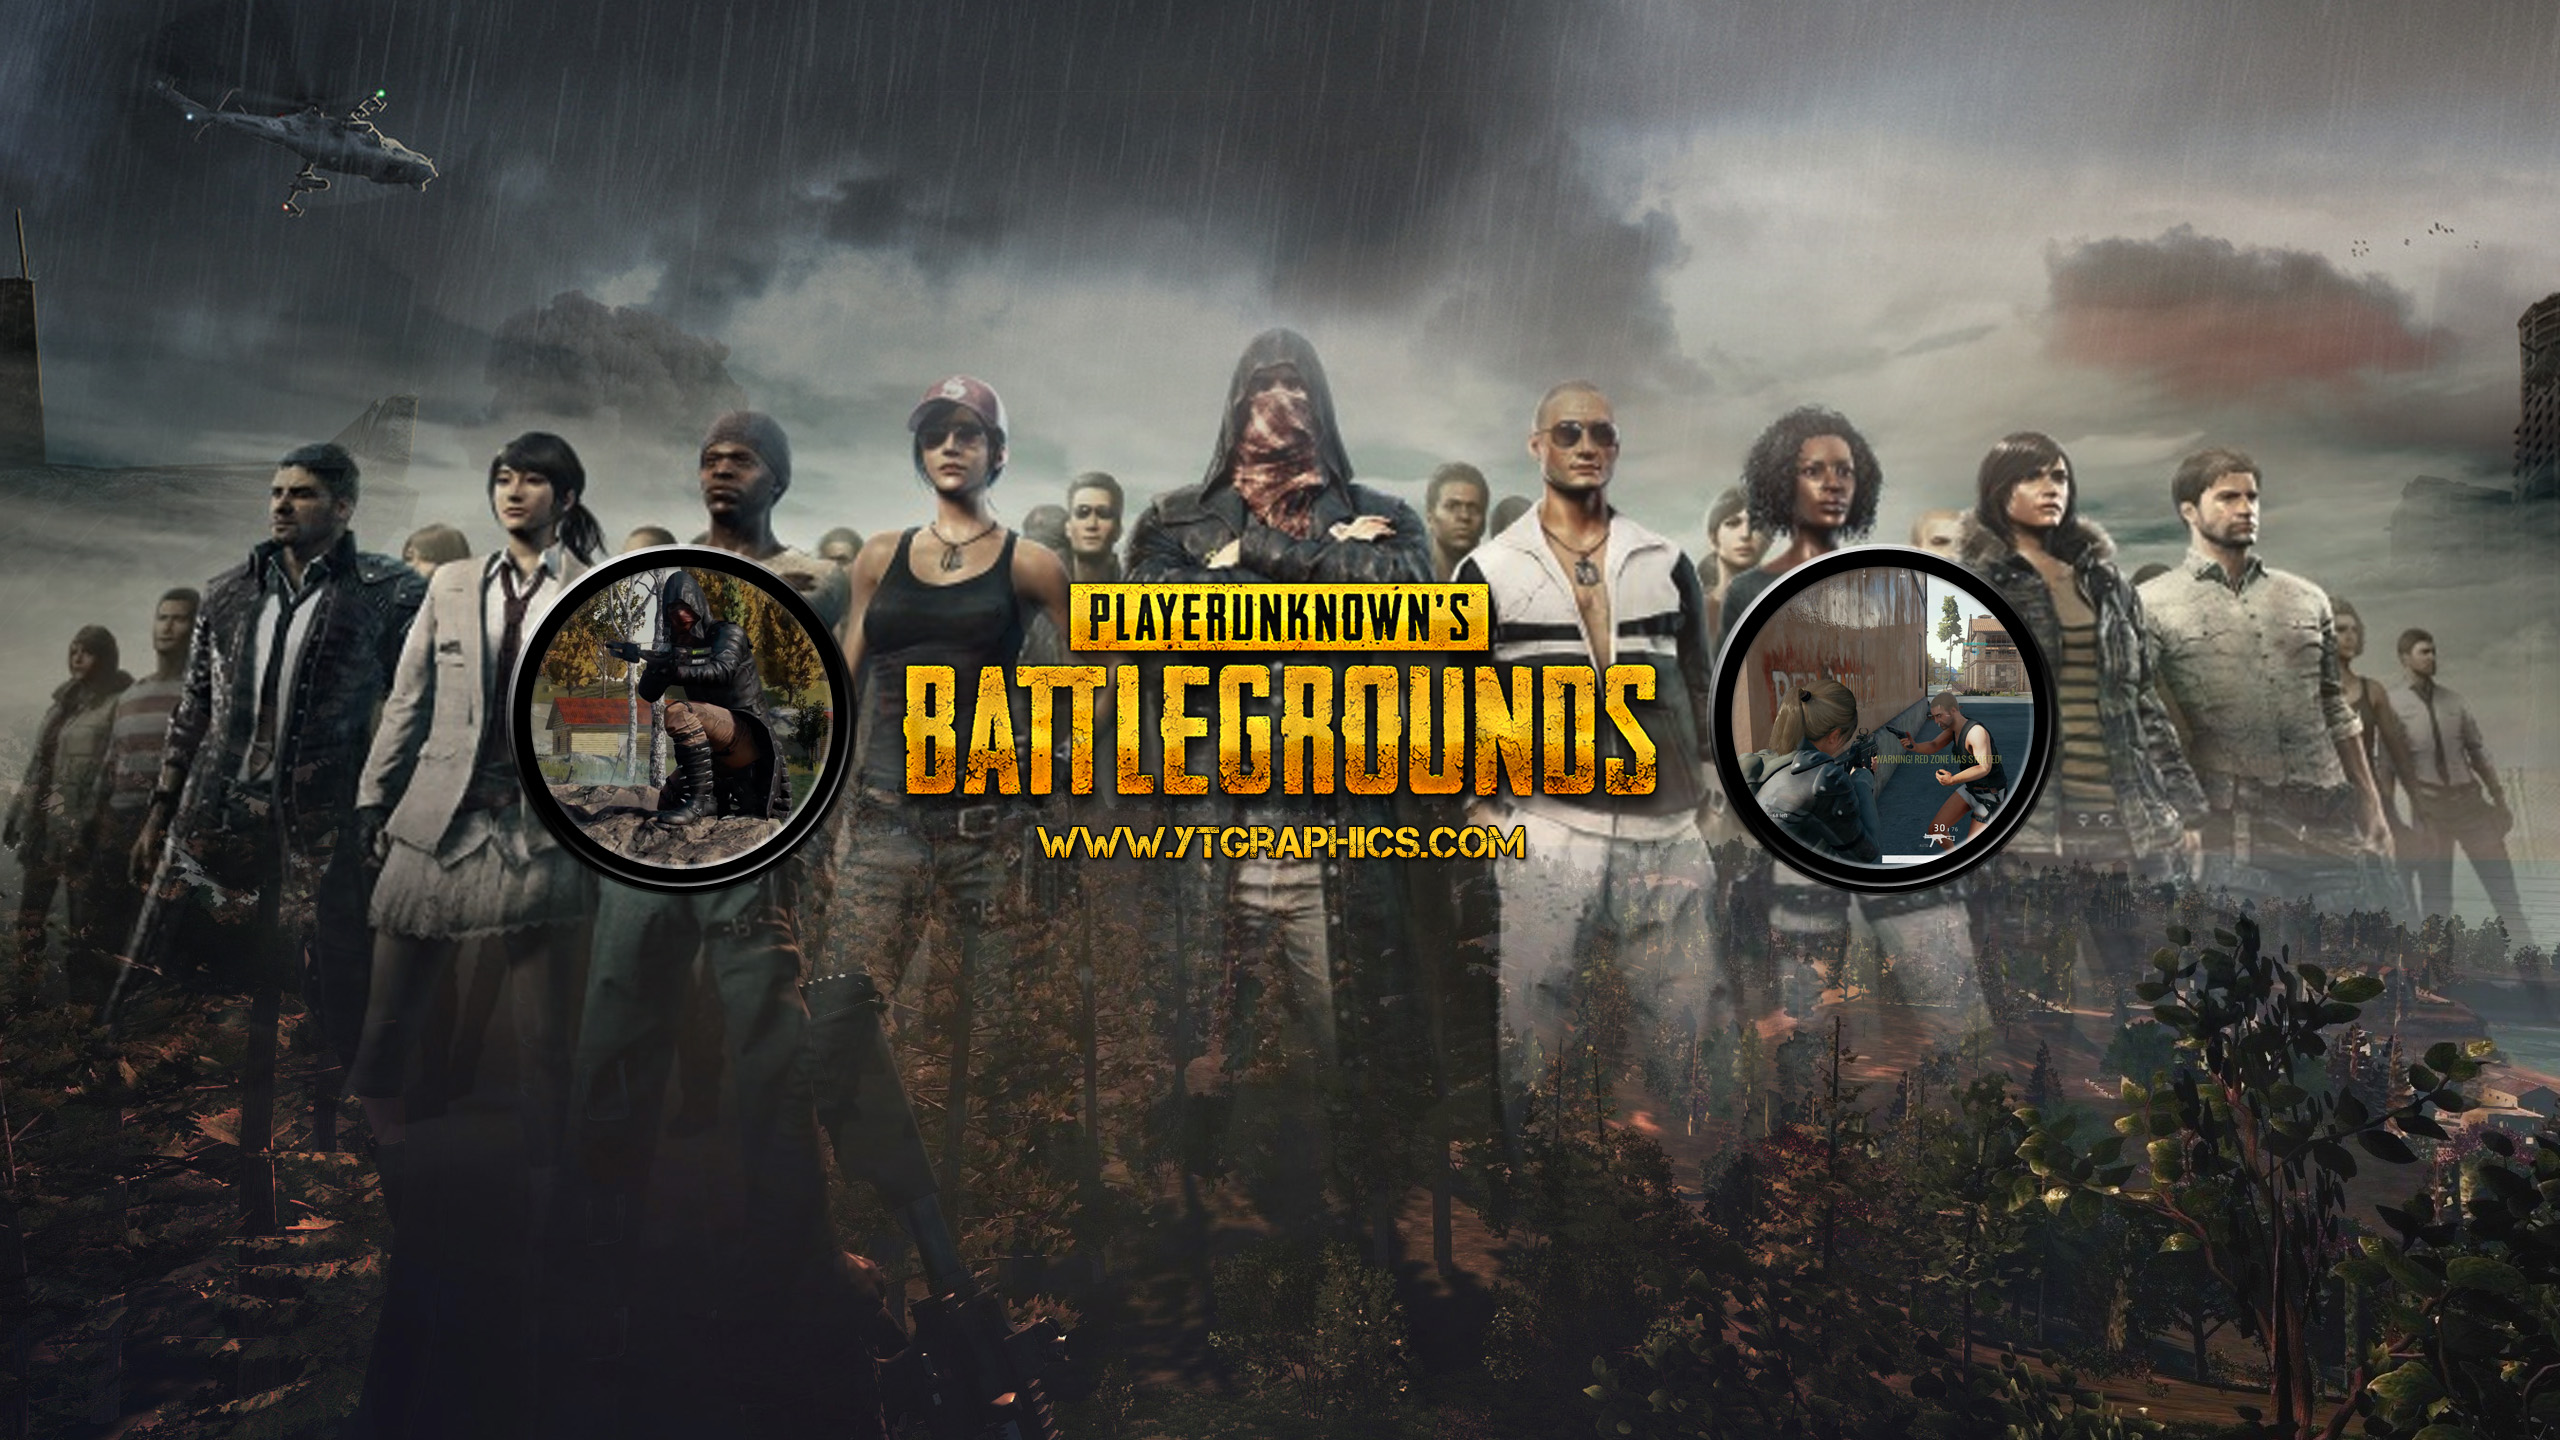 Pubg Wallpaper For Youtube Channel Art: Playerunknown S Battlegrounds Download